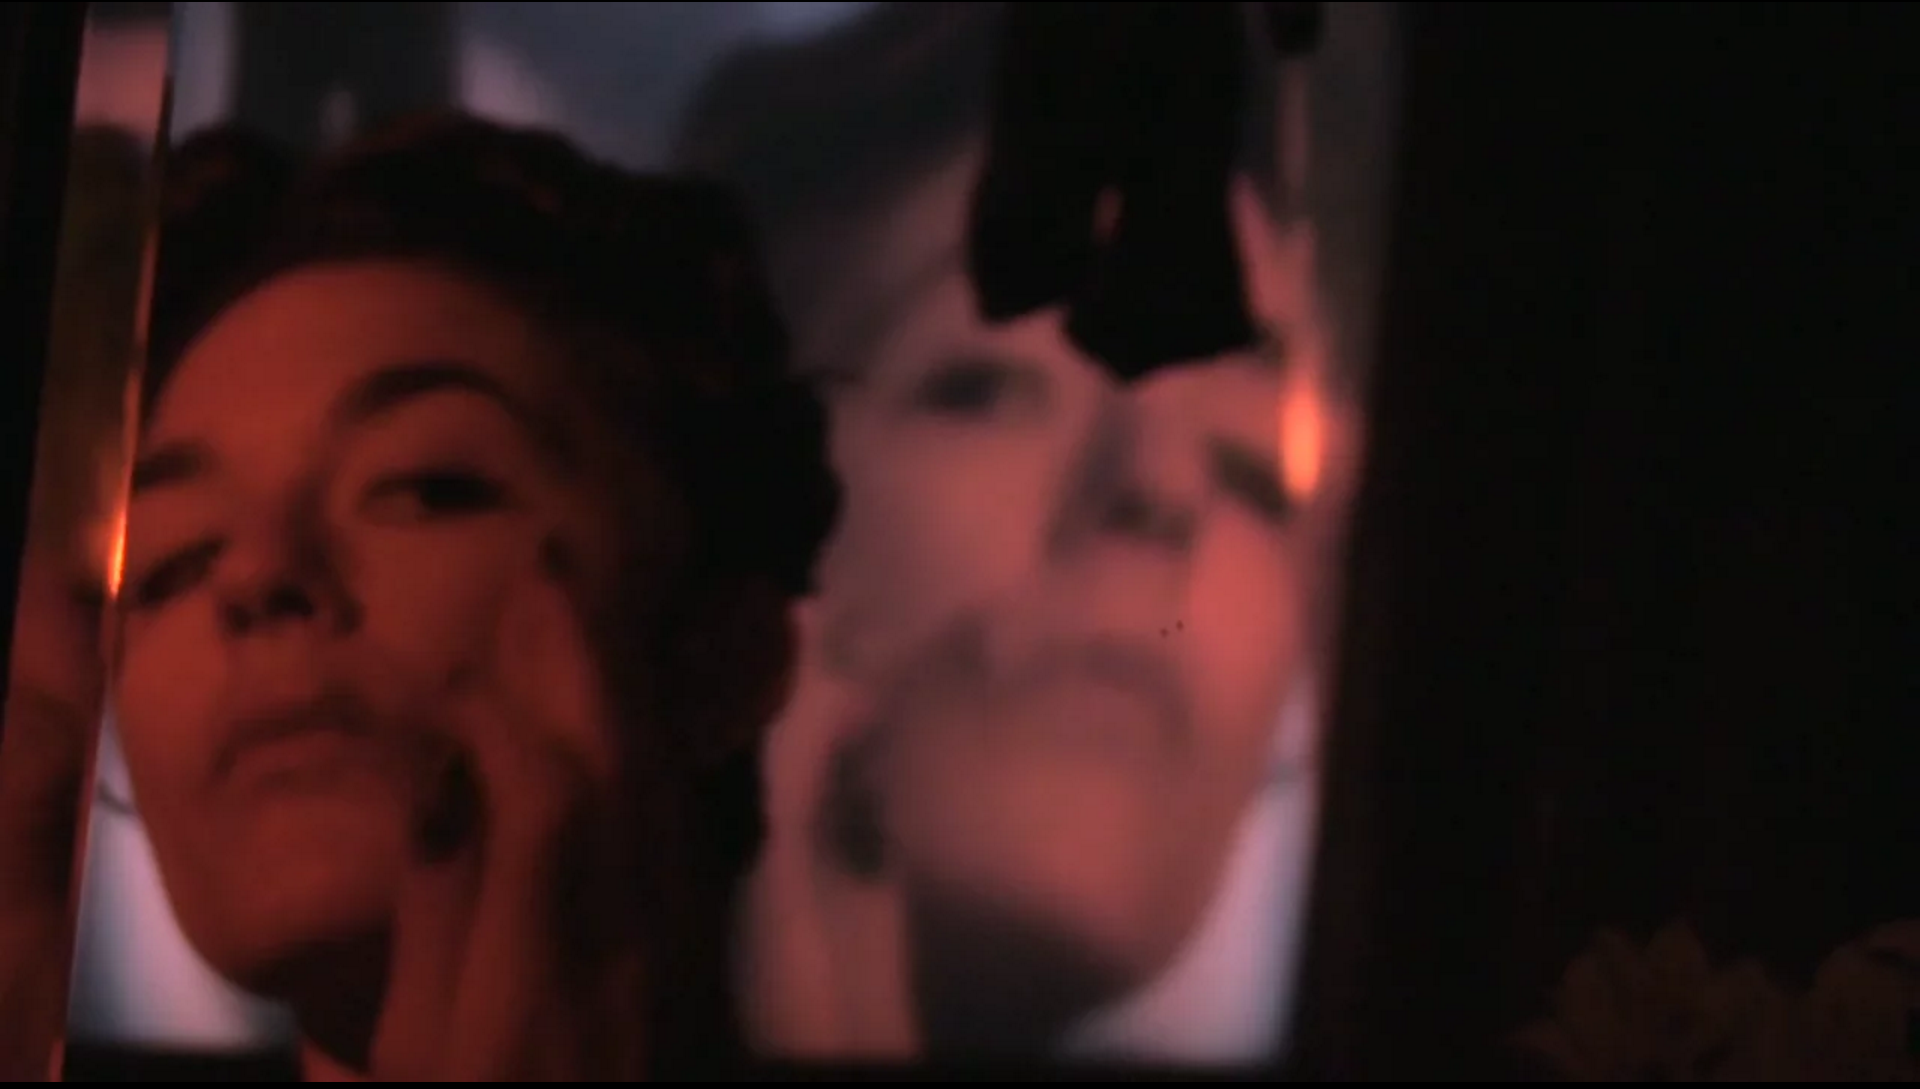 Screen capture from Lola: Putting it on at the Keefer